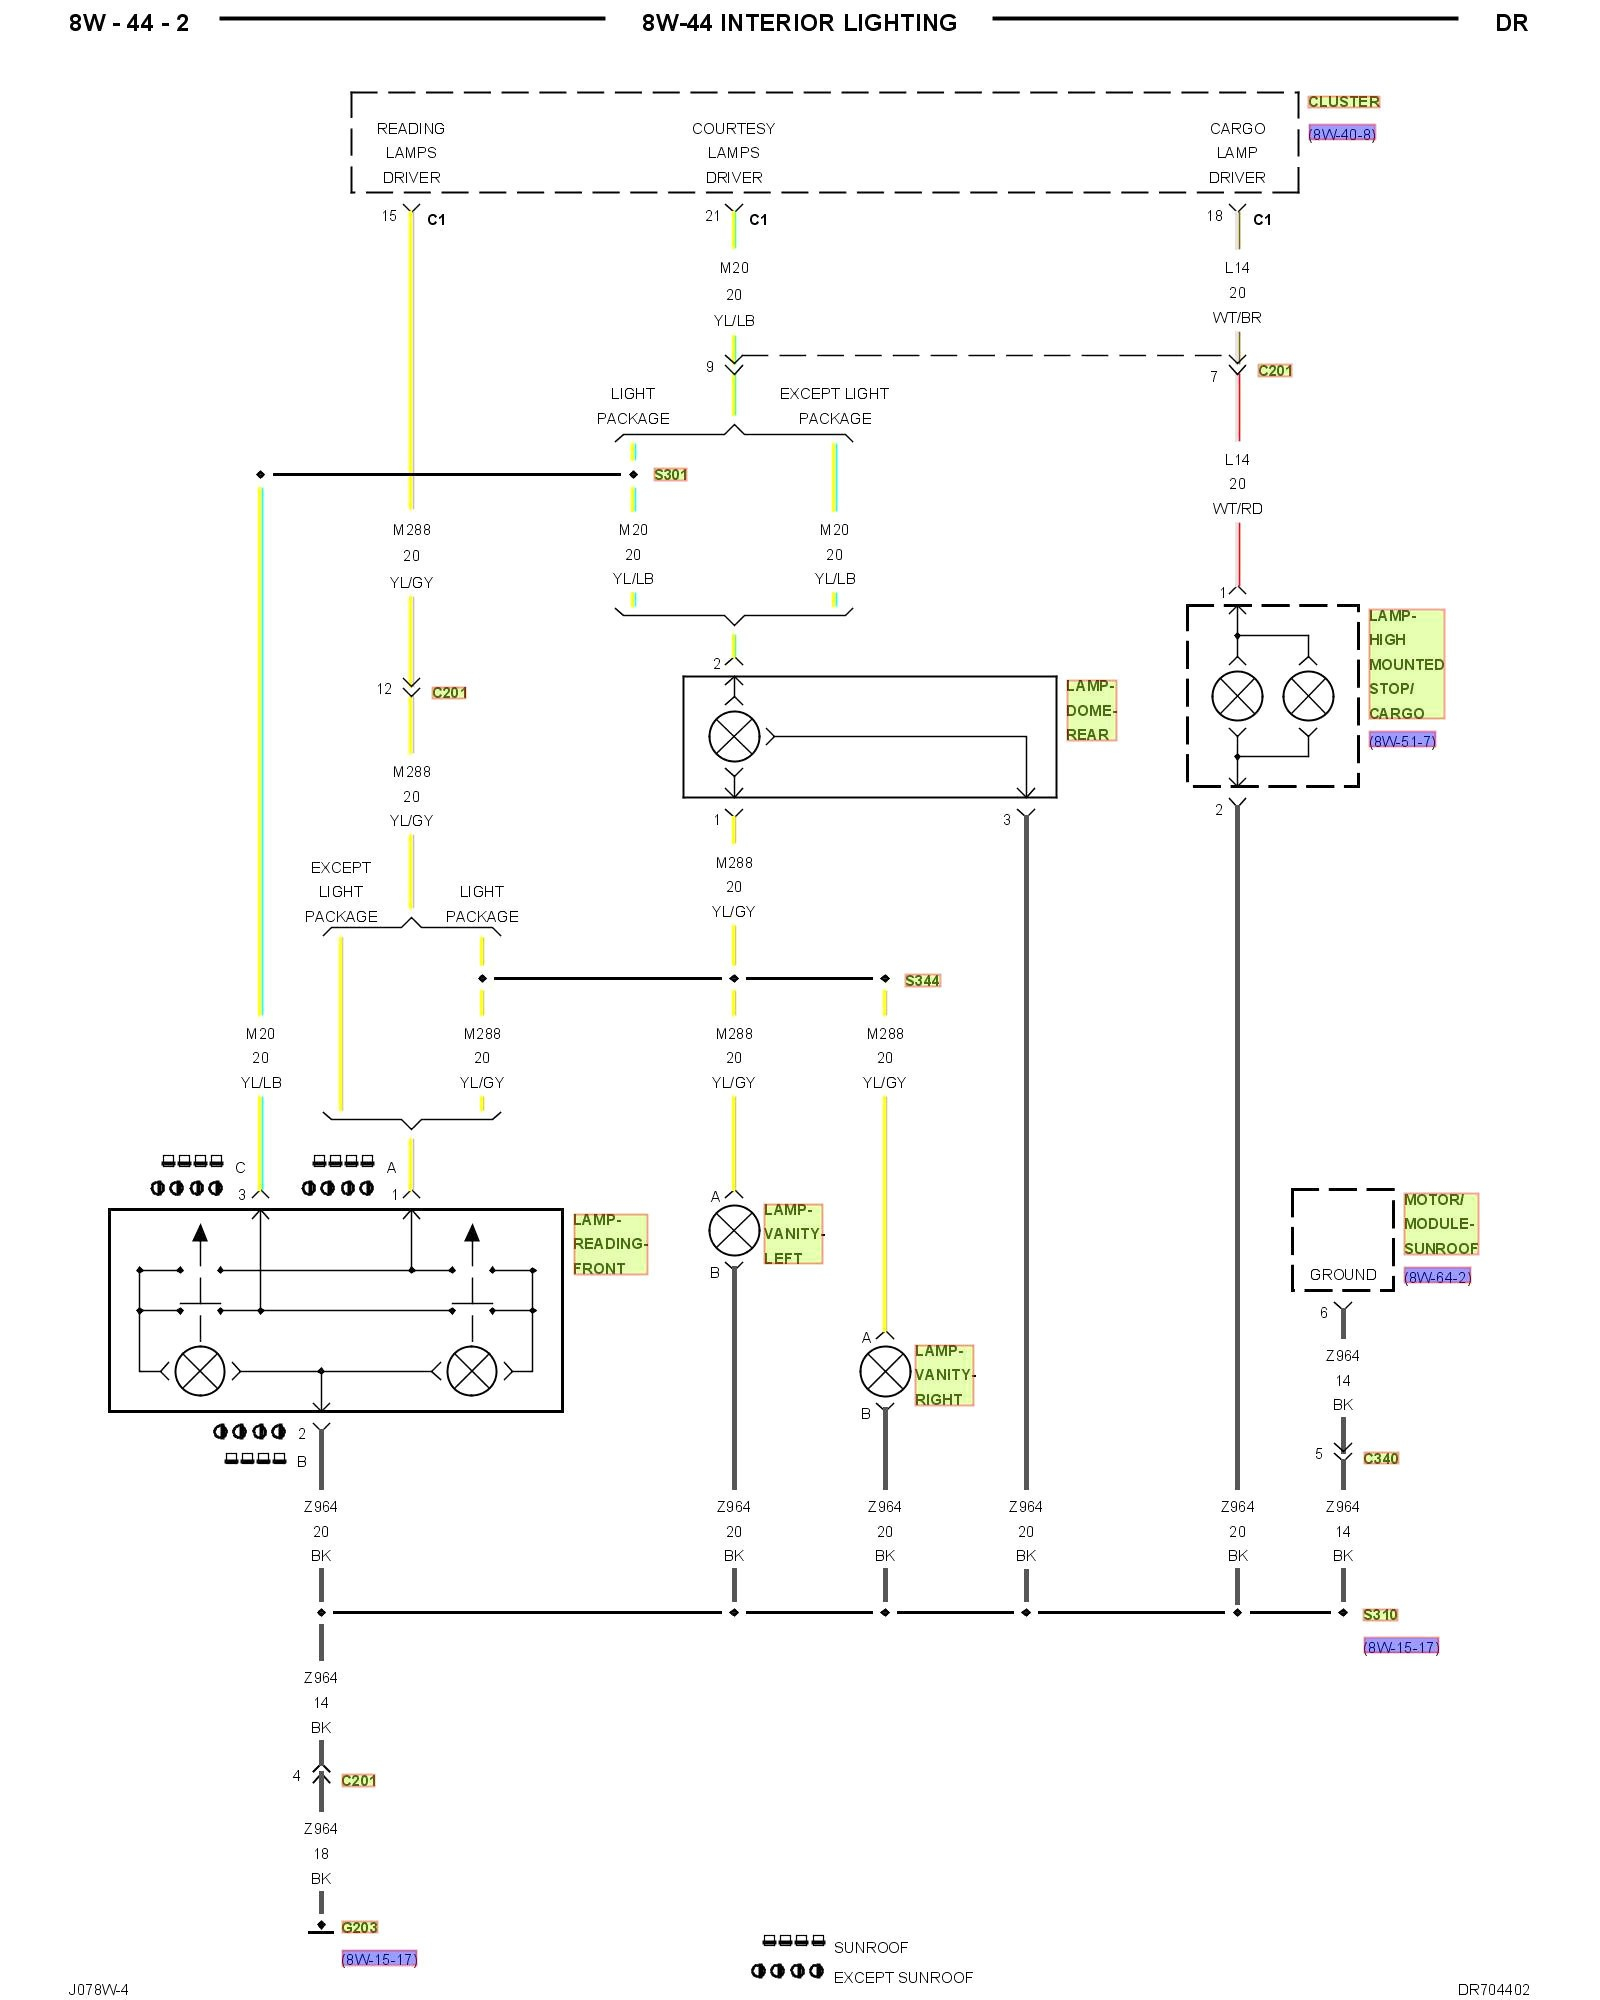 hight resolution of dodge ram 2500 wiring diagram my wiring diagram 2008 dodge ram 2500 infinity stereo wiring diagram 2008 dodge ram 2500 wiring diagram